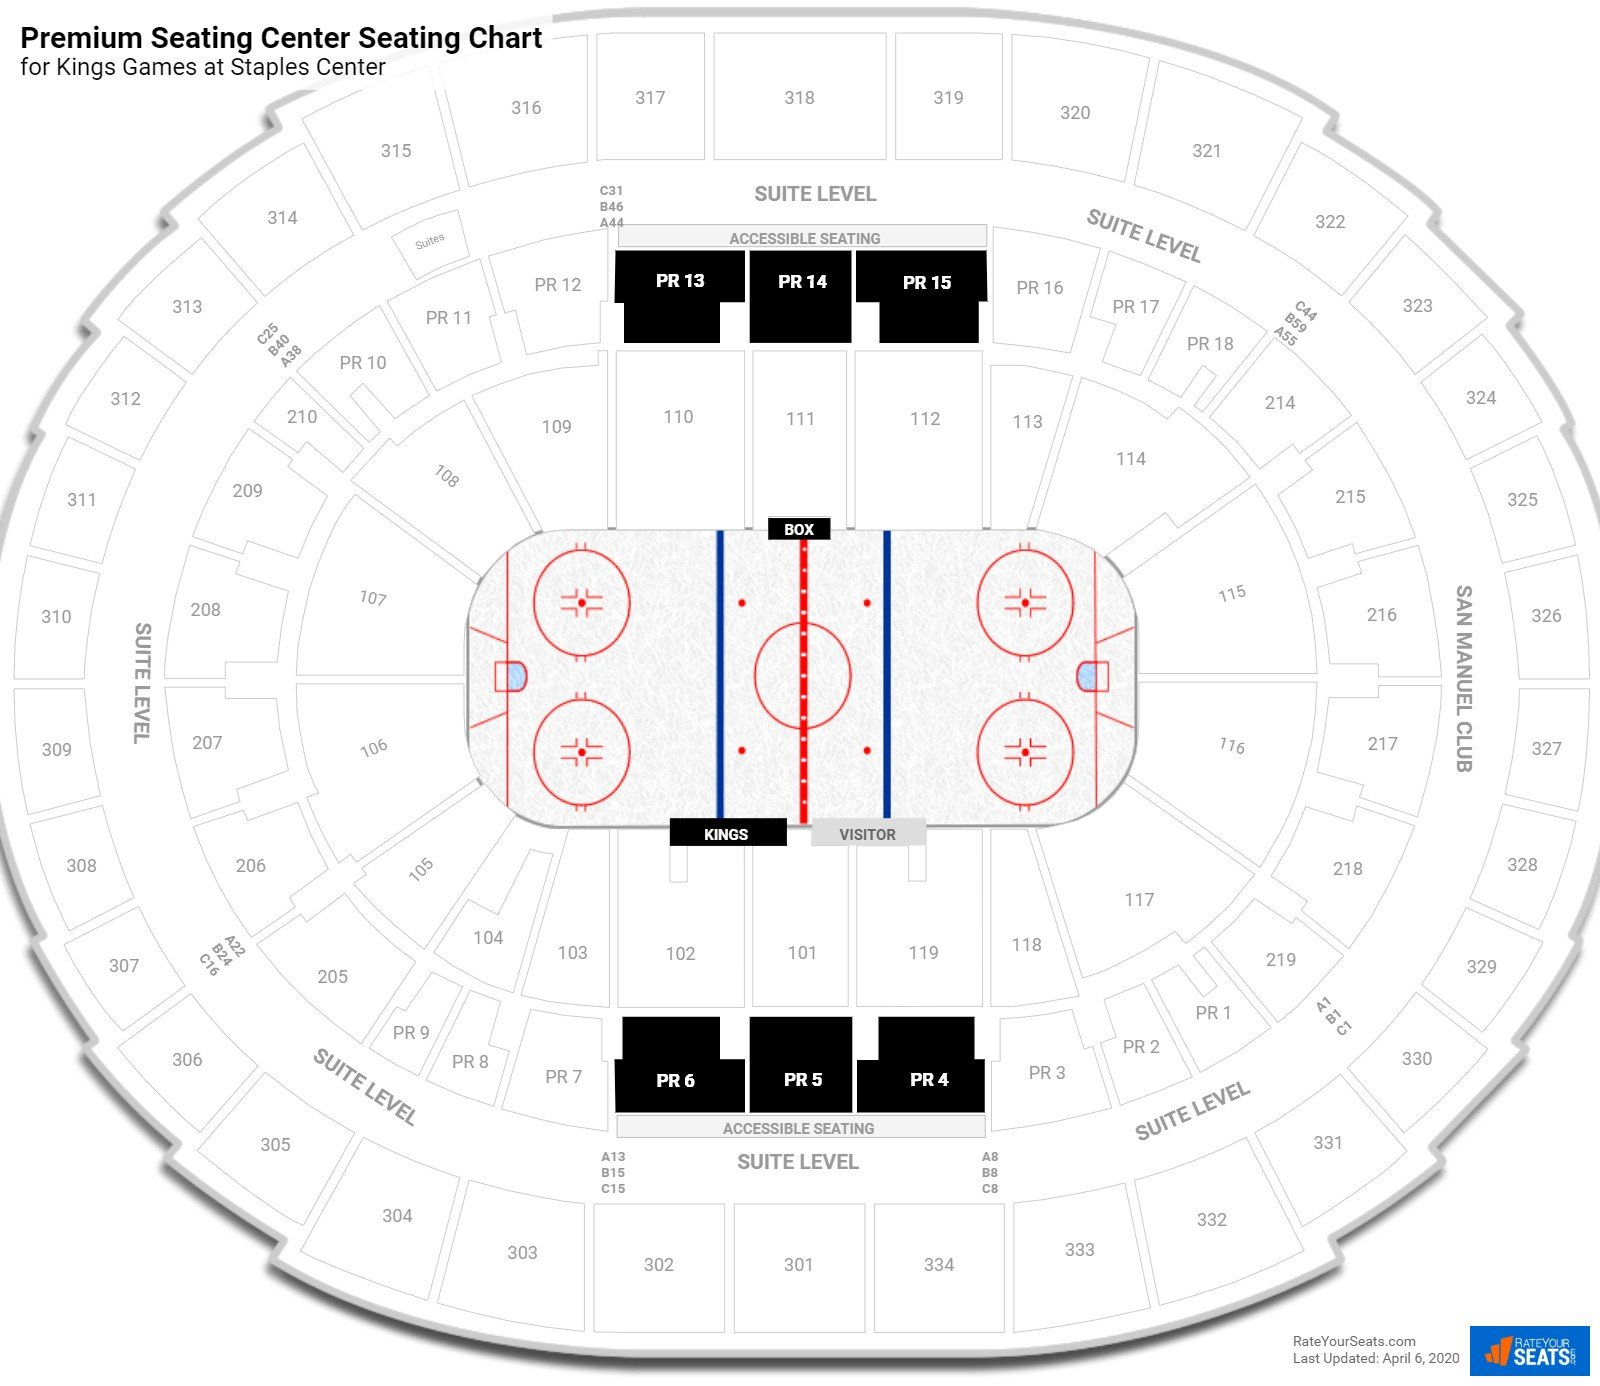 Staples Center Premium Seating Center seating chart